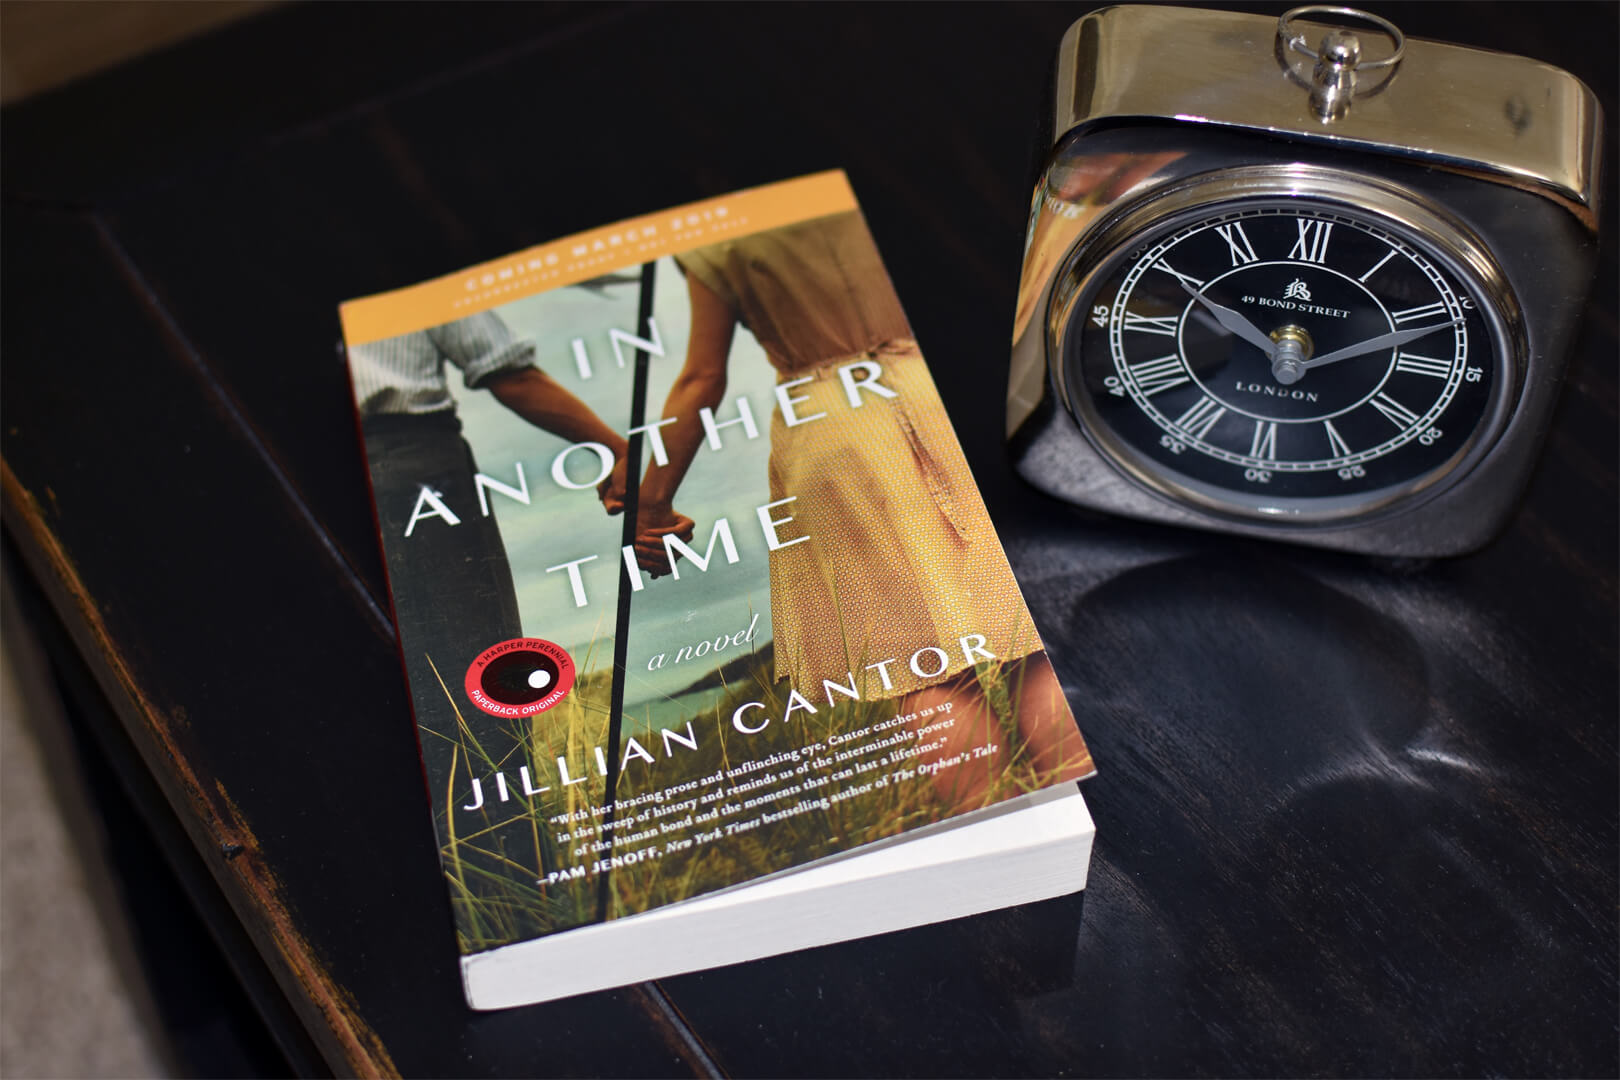 In Another Time - Jillian Cantor